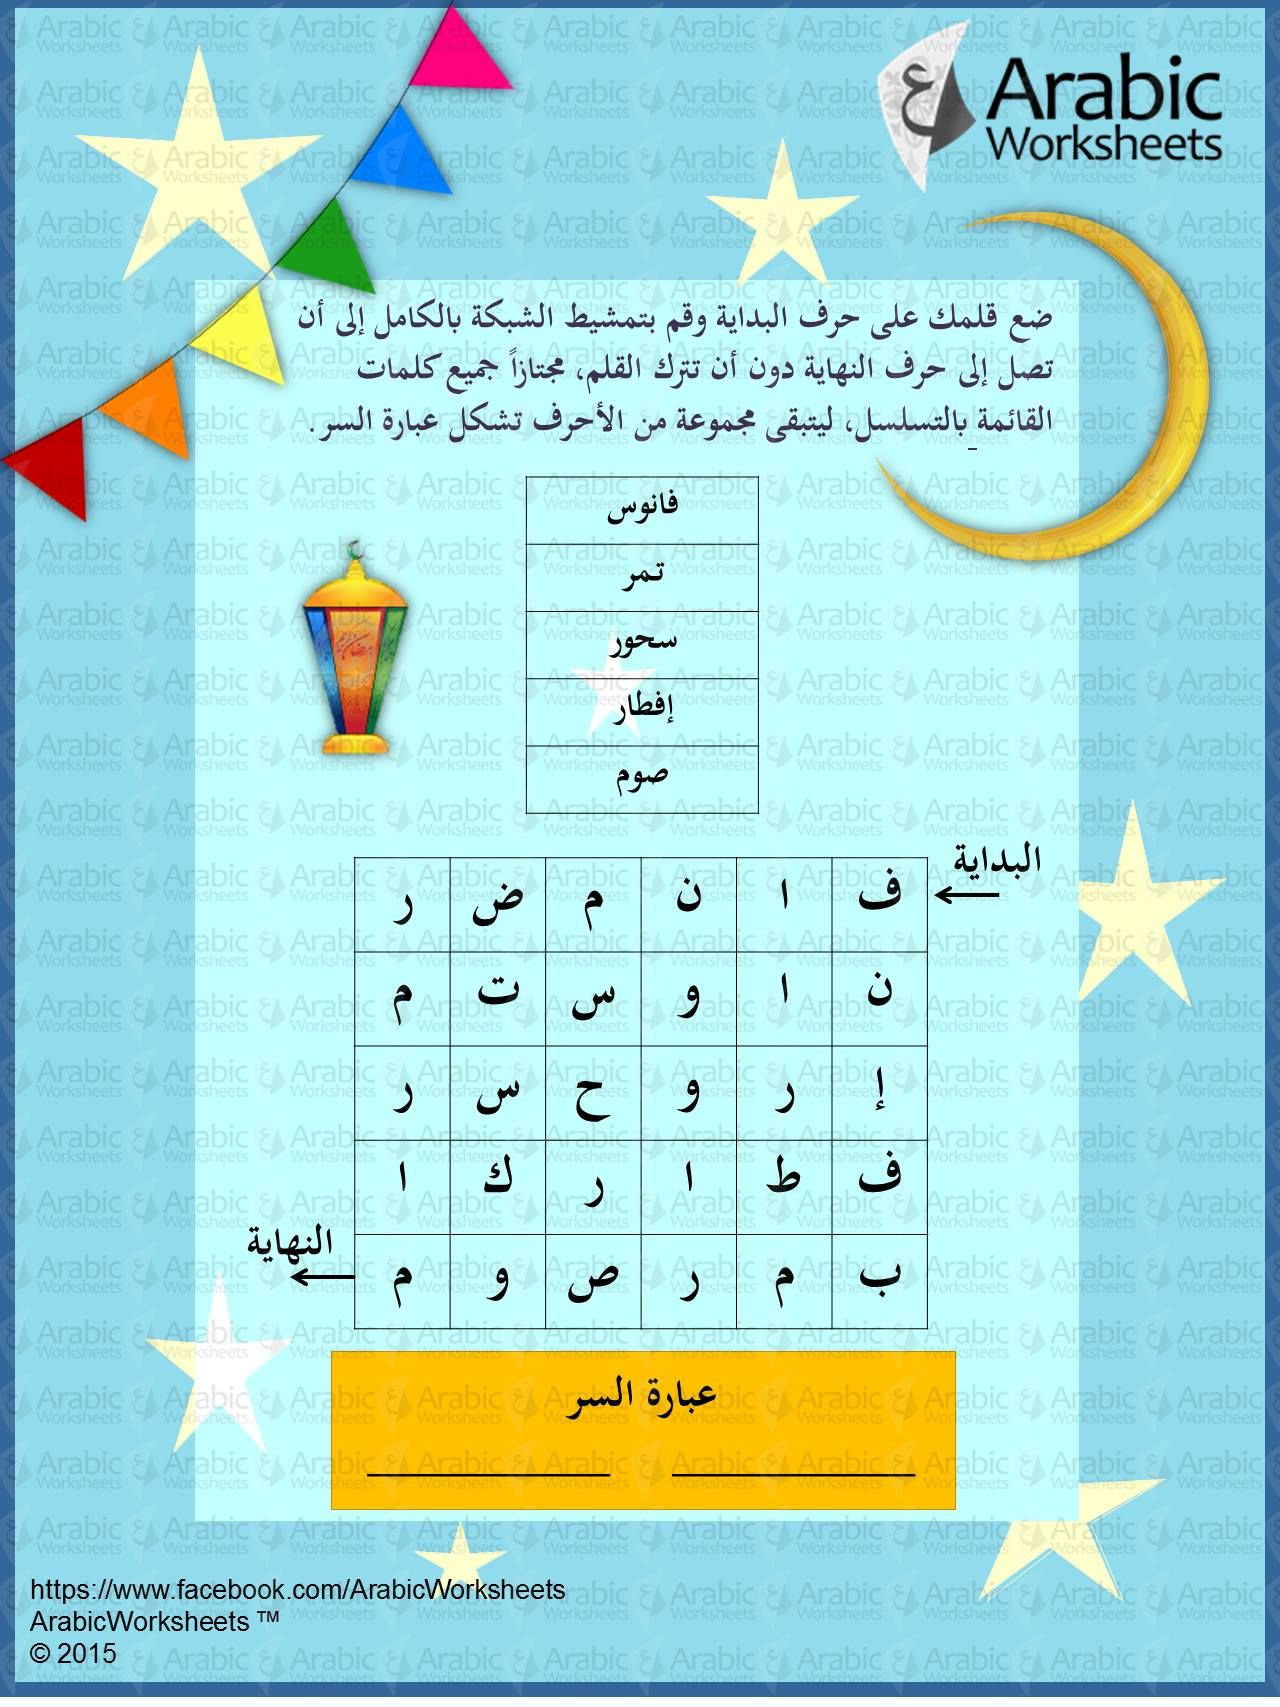 Fiche Arabic Worksheets Sur Fb